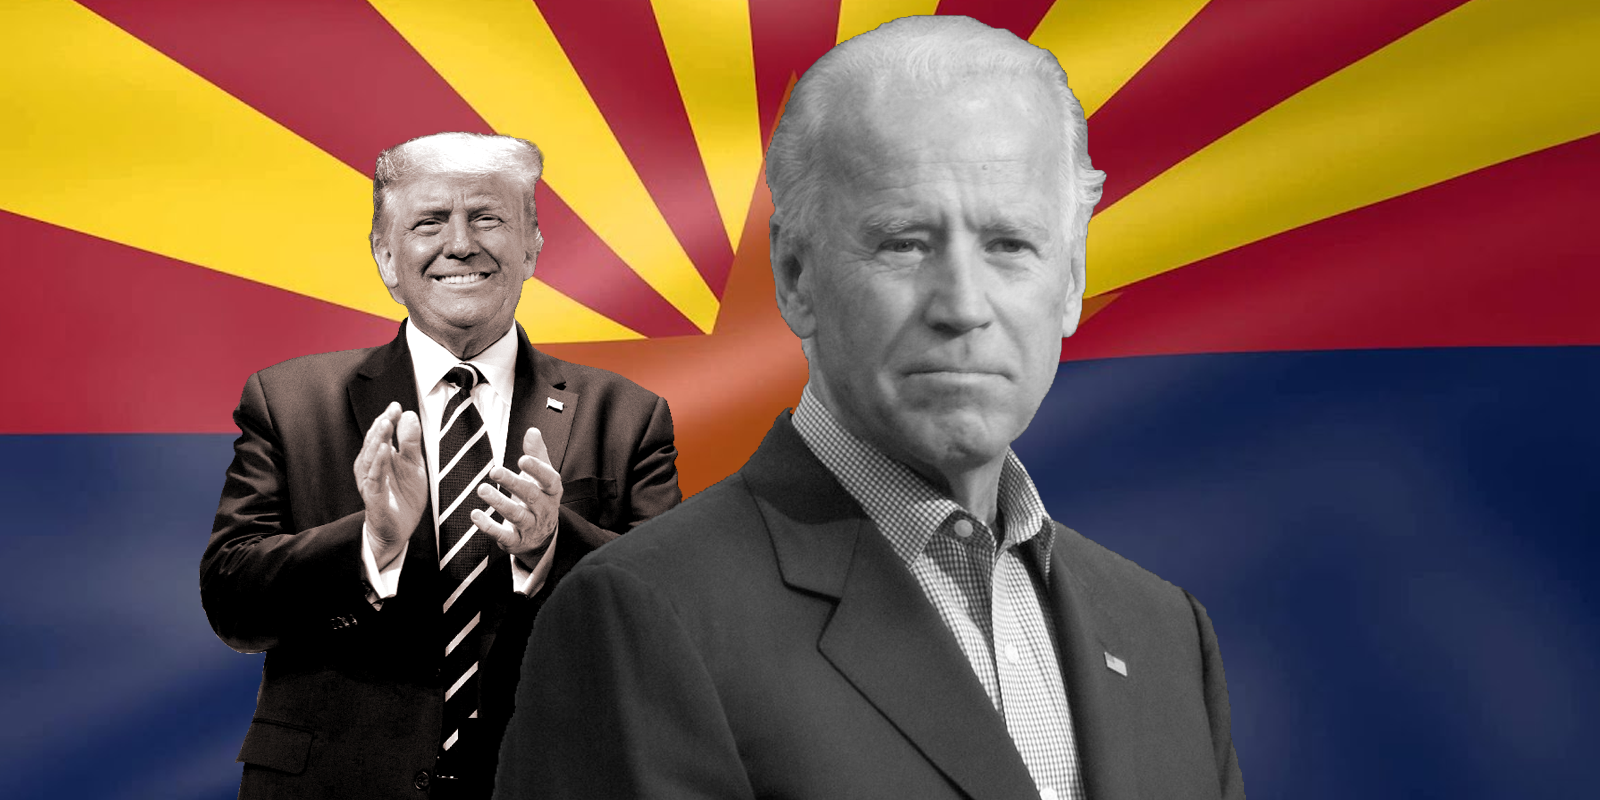 BREAKING: Arizona in play for Trump after data error revealed